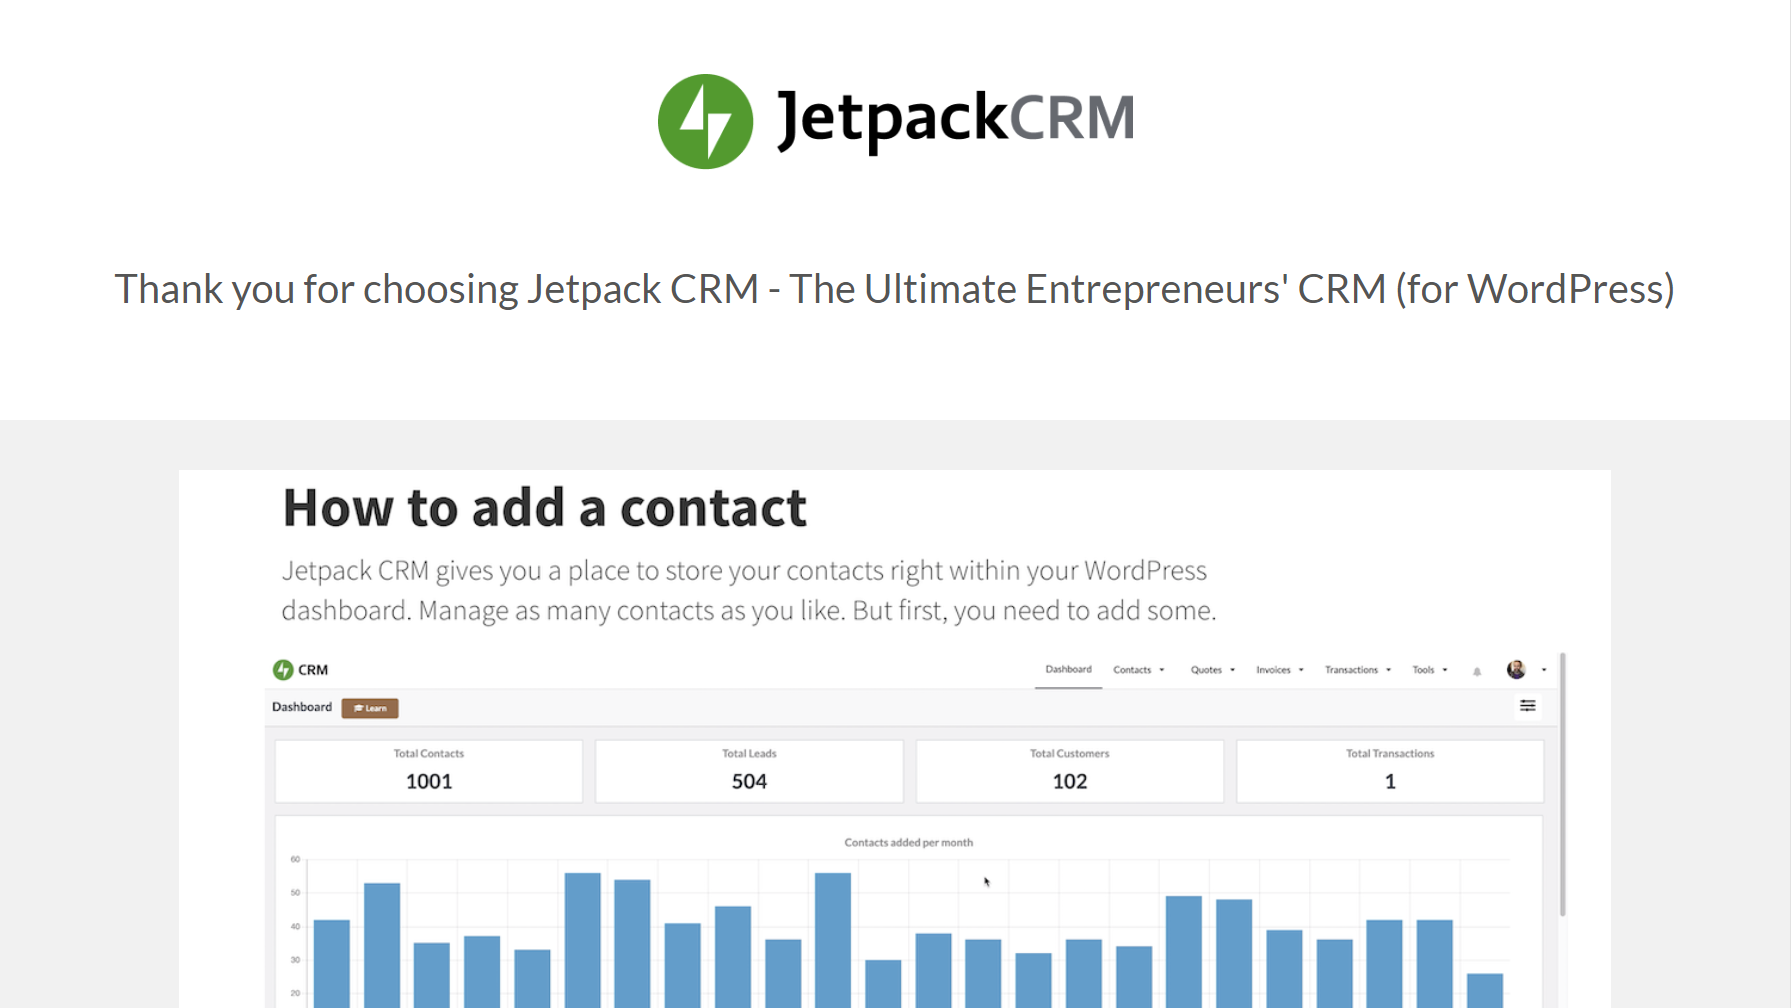 zero-bs-crm-rebrands-and-relaunches-as-jetpack-crm Zero BS CRM Rebrands and Relaunches as Jetpack CRM